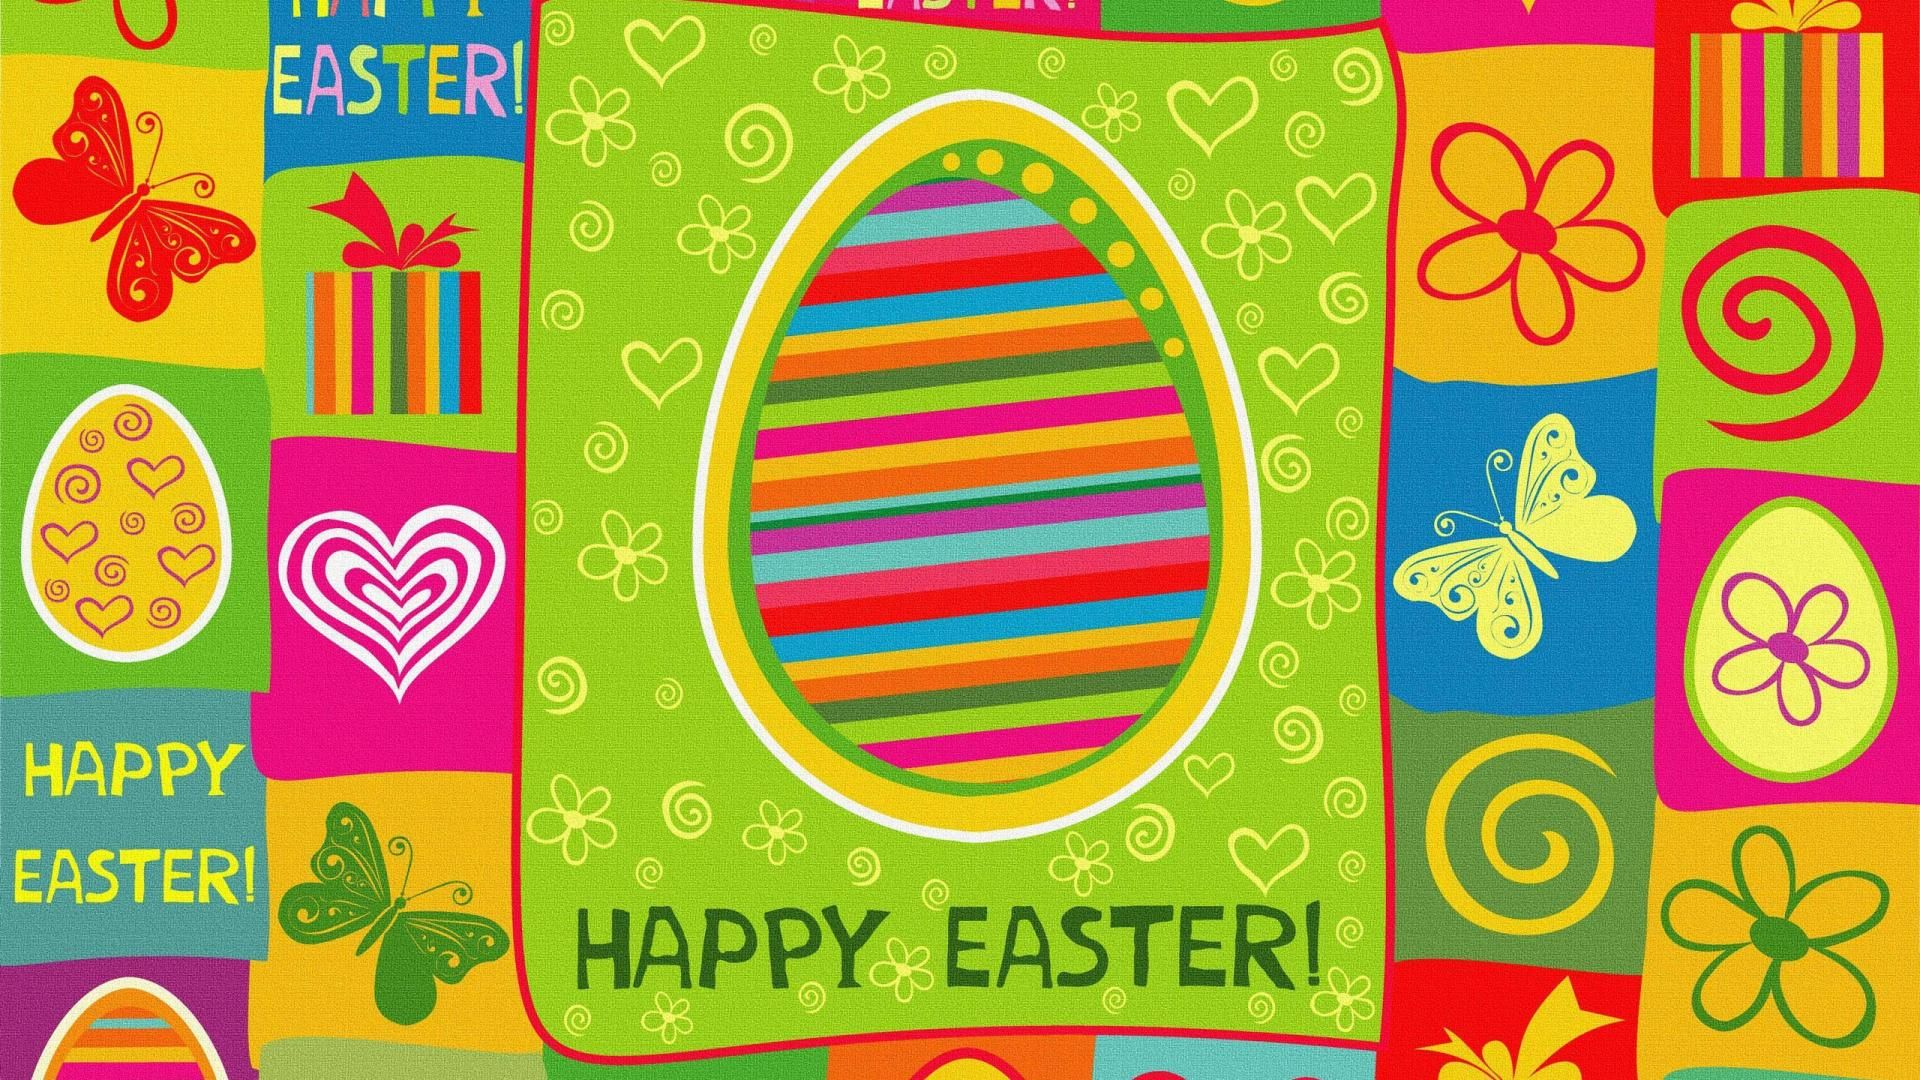 Easter Greetings Spring Pinterest Happy Easter And Easter